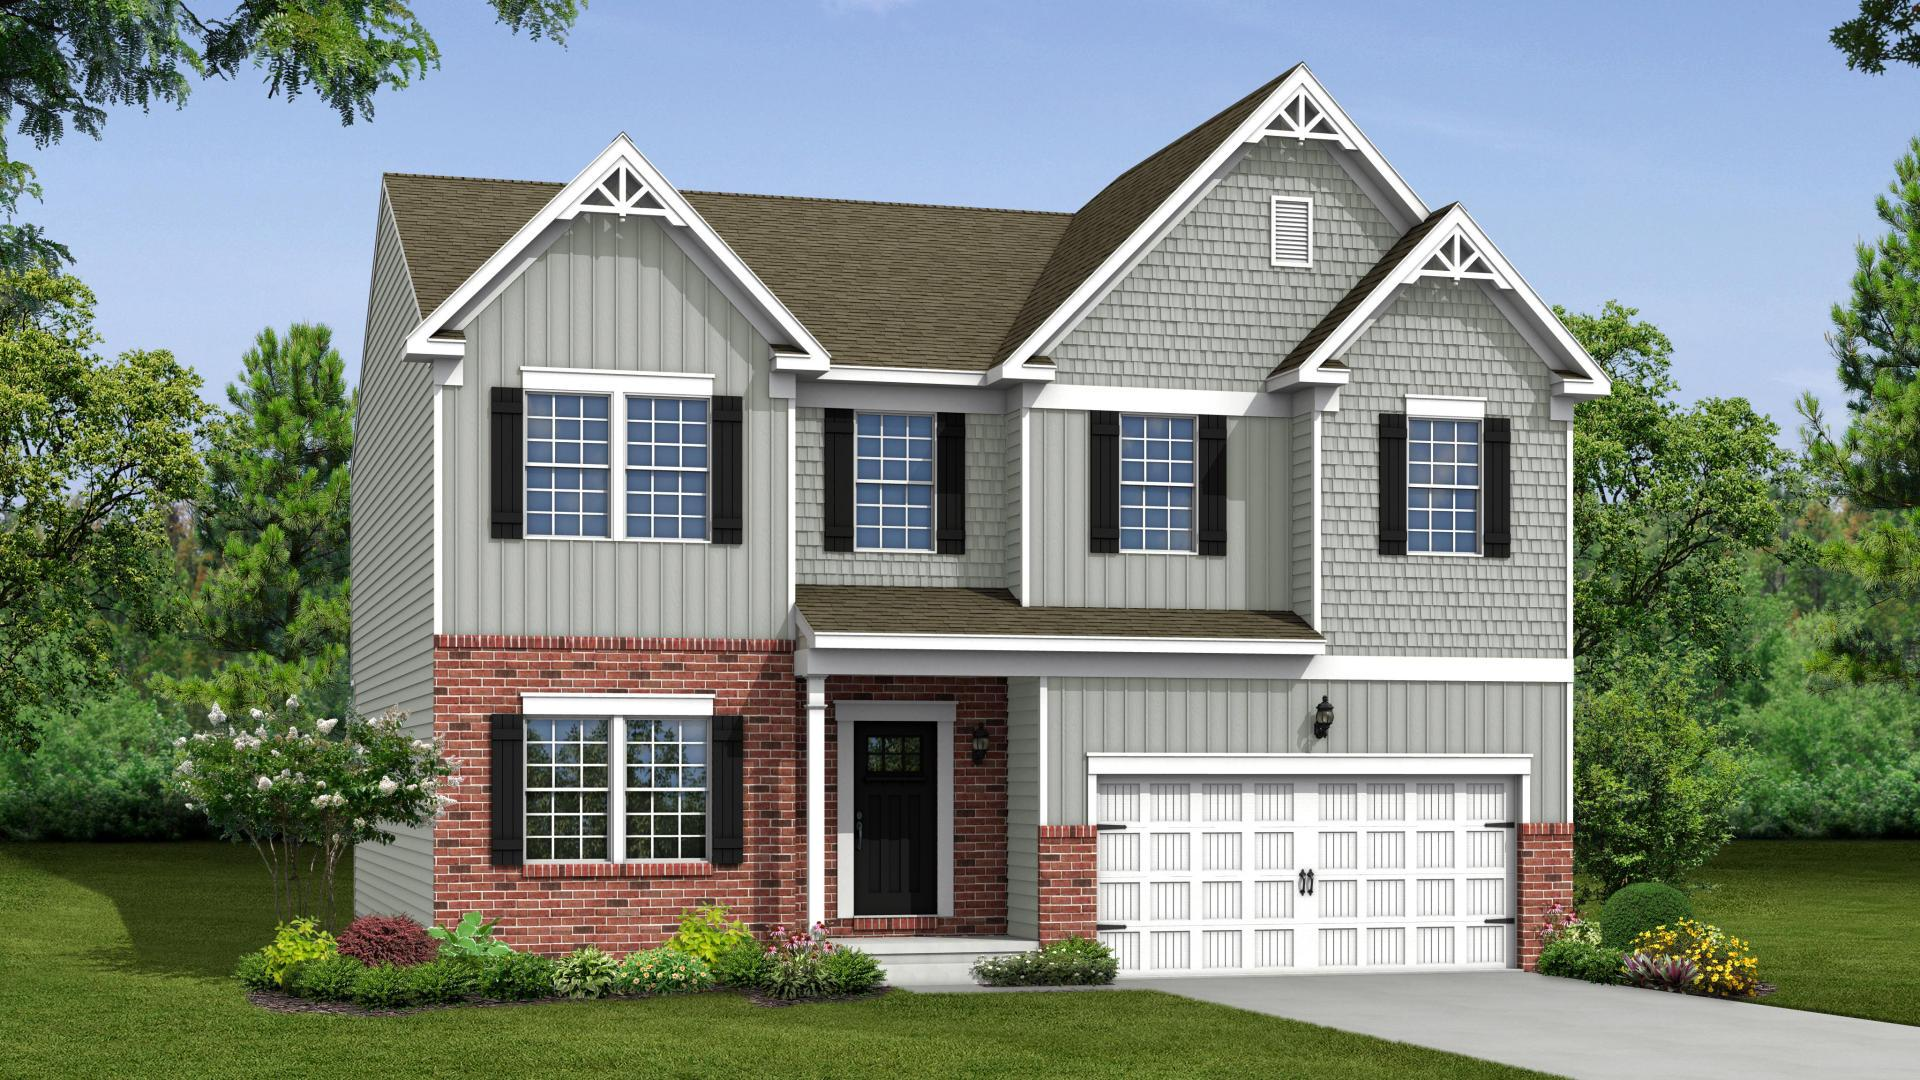 Exterior:Elevation: K Opt Carolina Partital Brick Facade, Porch, & Garage Door